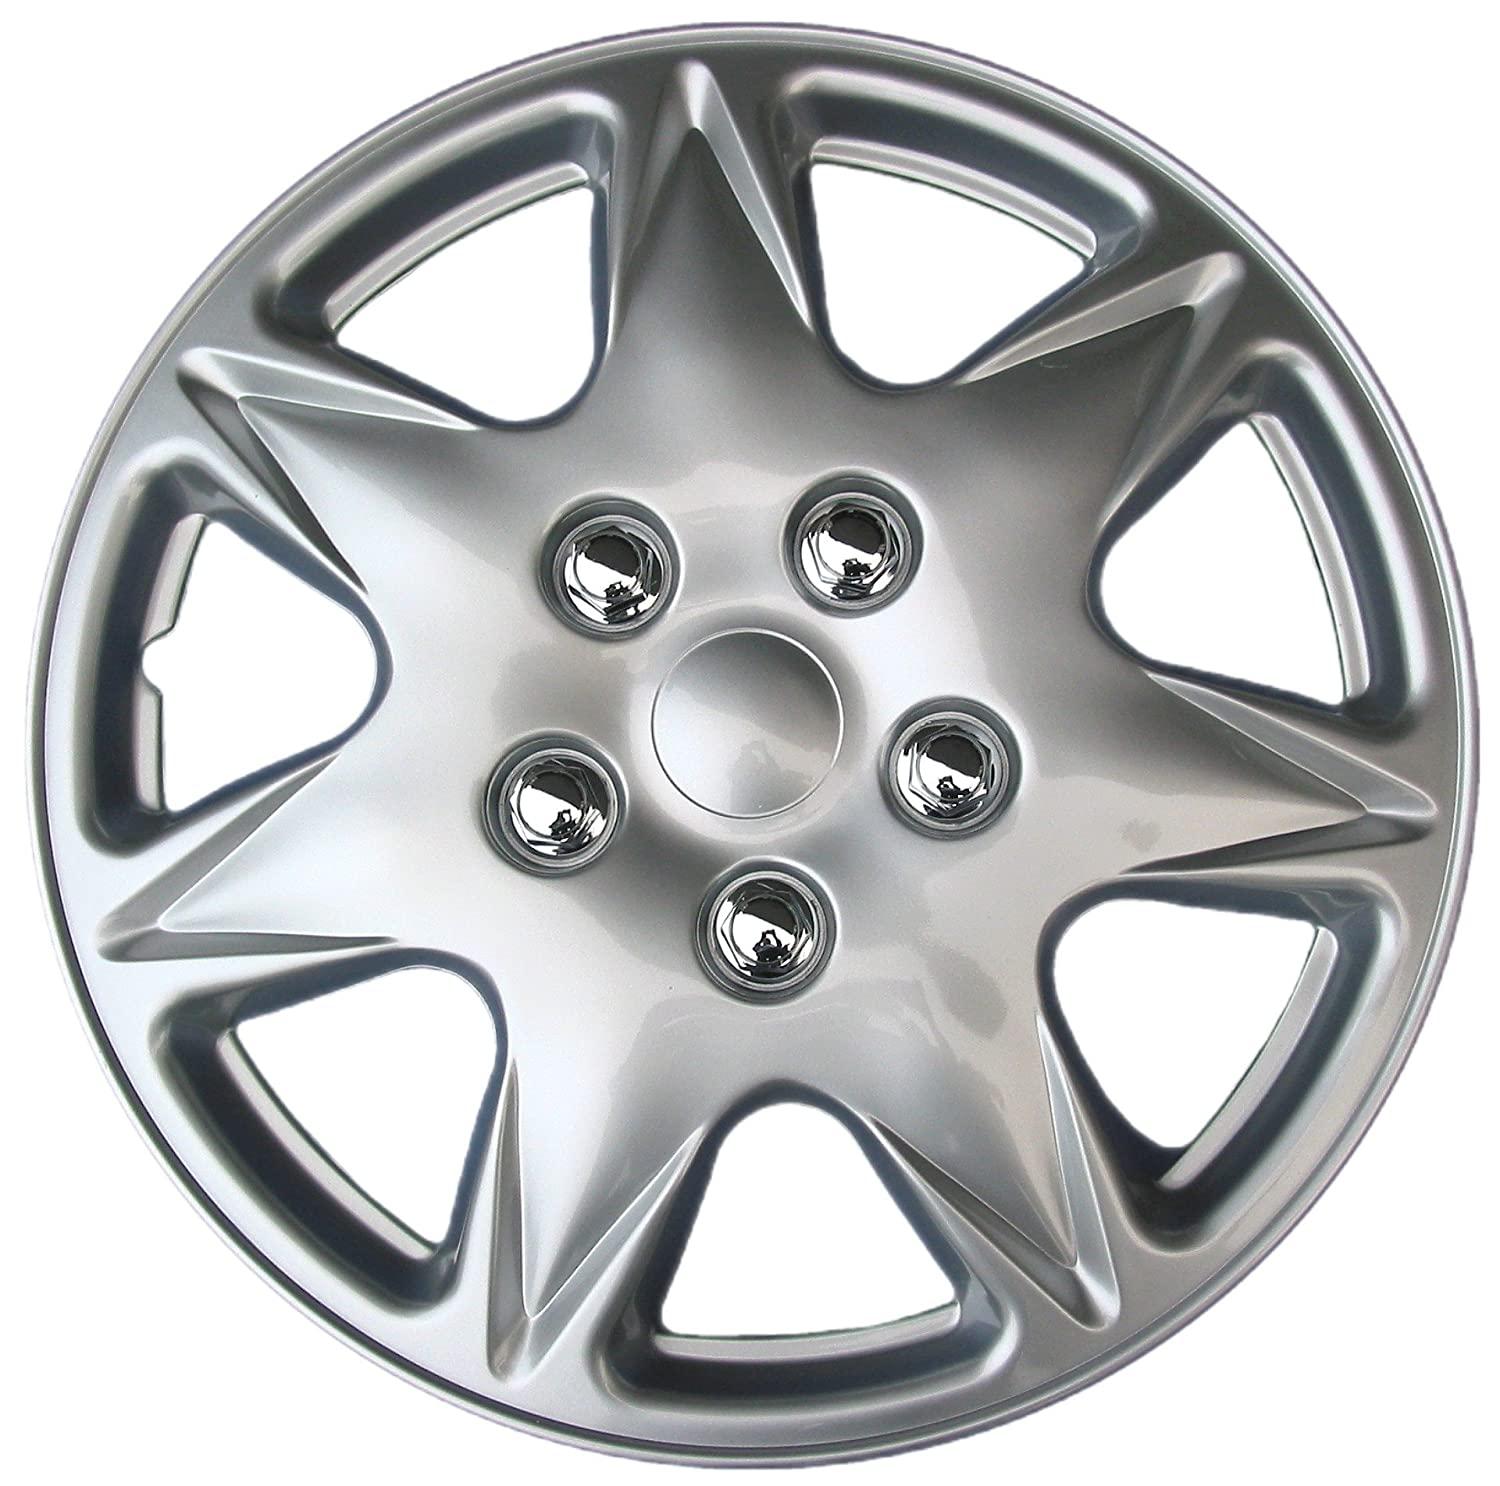 Find holden hubcaps ads in our Wheels, Tyres & Rims category. Buy and sell almost anything on Gumtree classifieds.